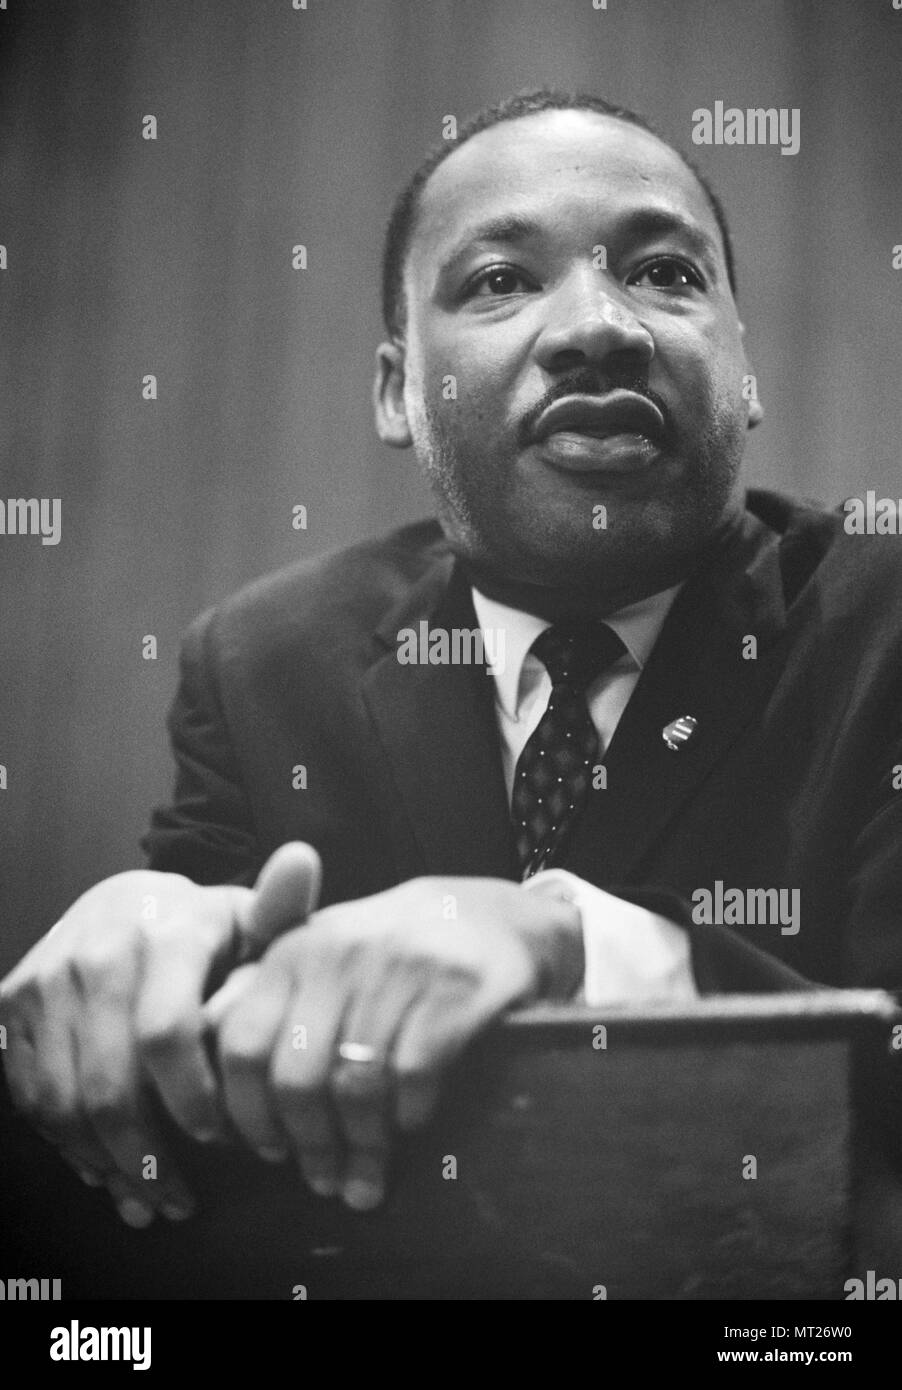 Martin Luther King at press conference on March 26, 1964 in Washington, D.C. following the Senate debate on the Civil Rights bill. - Stock Image